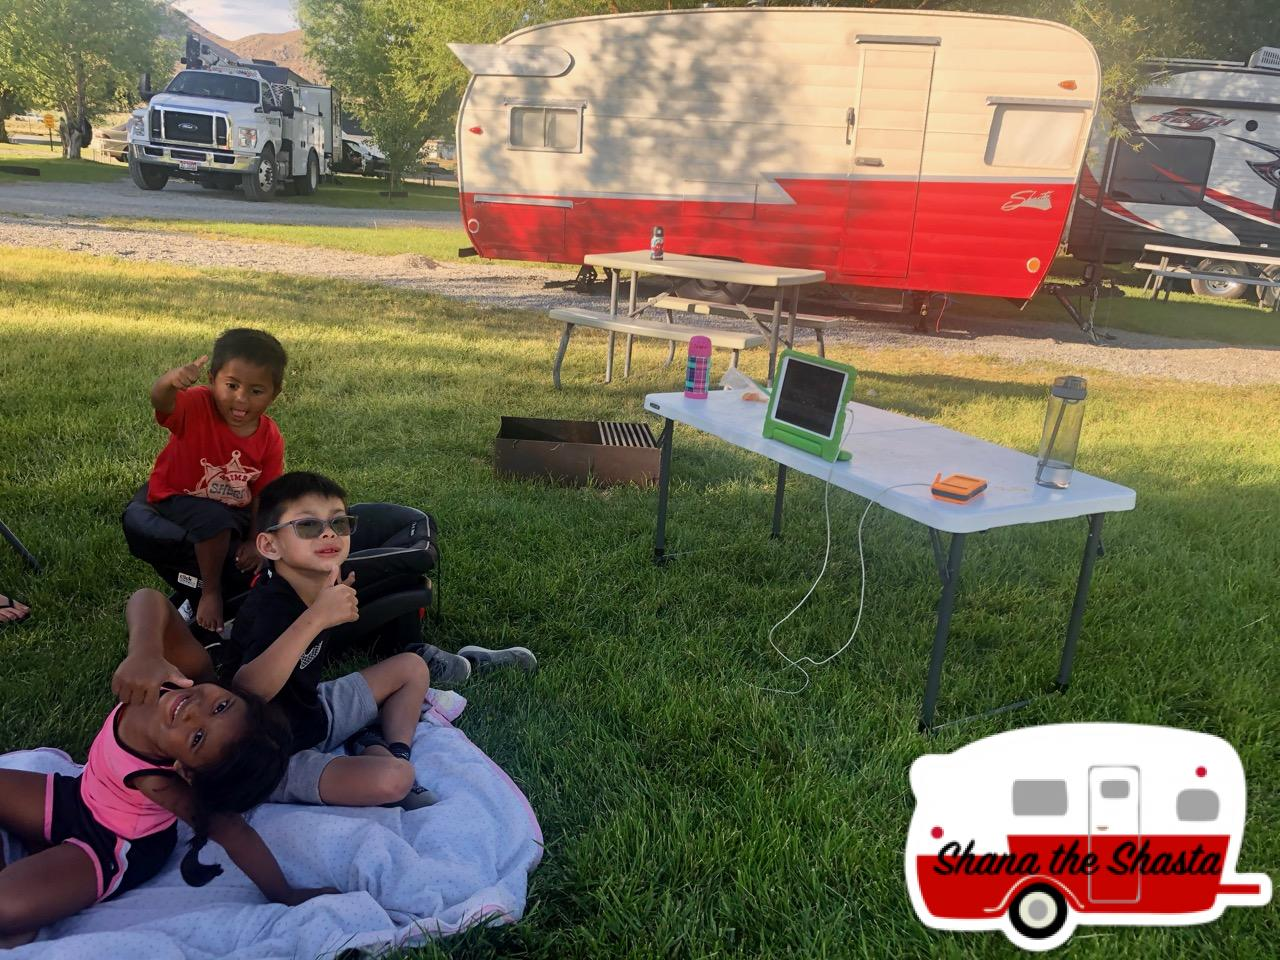 Homemade-Drive-In-Movie-at-Craters-KOA